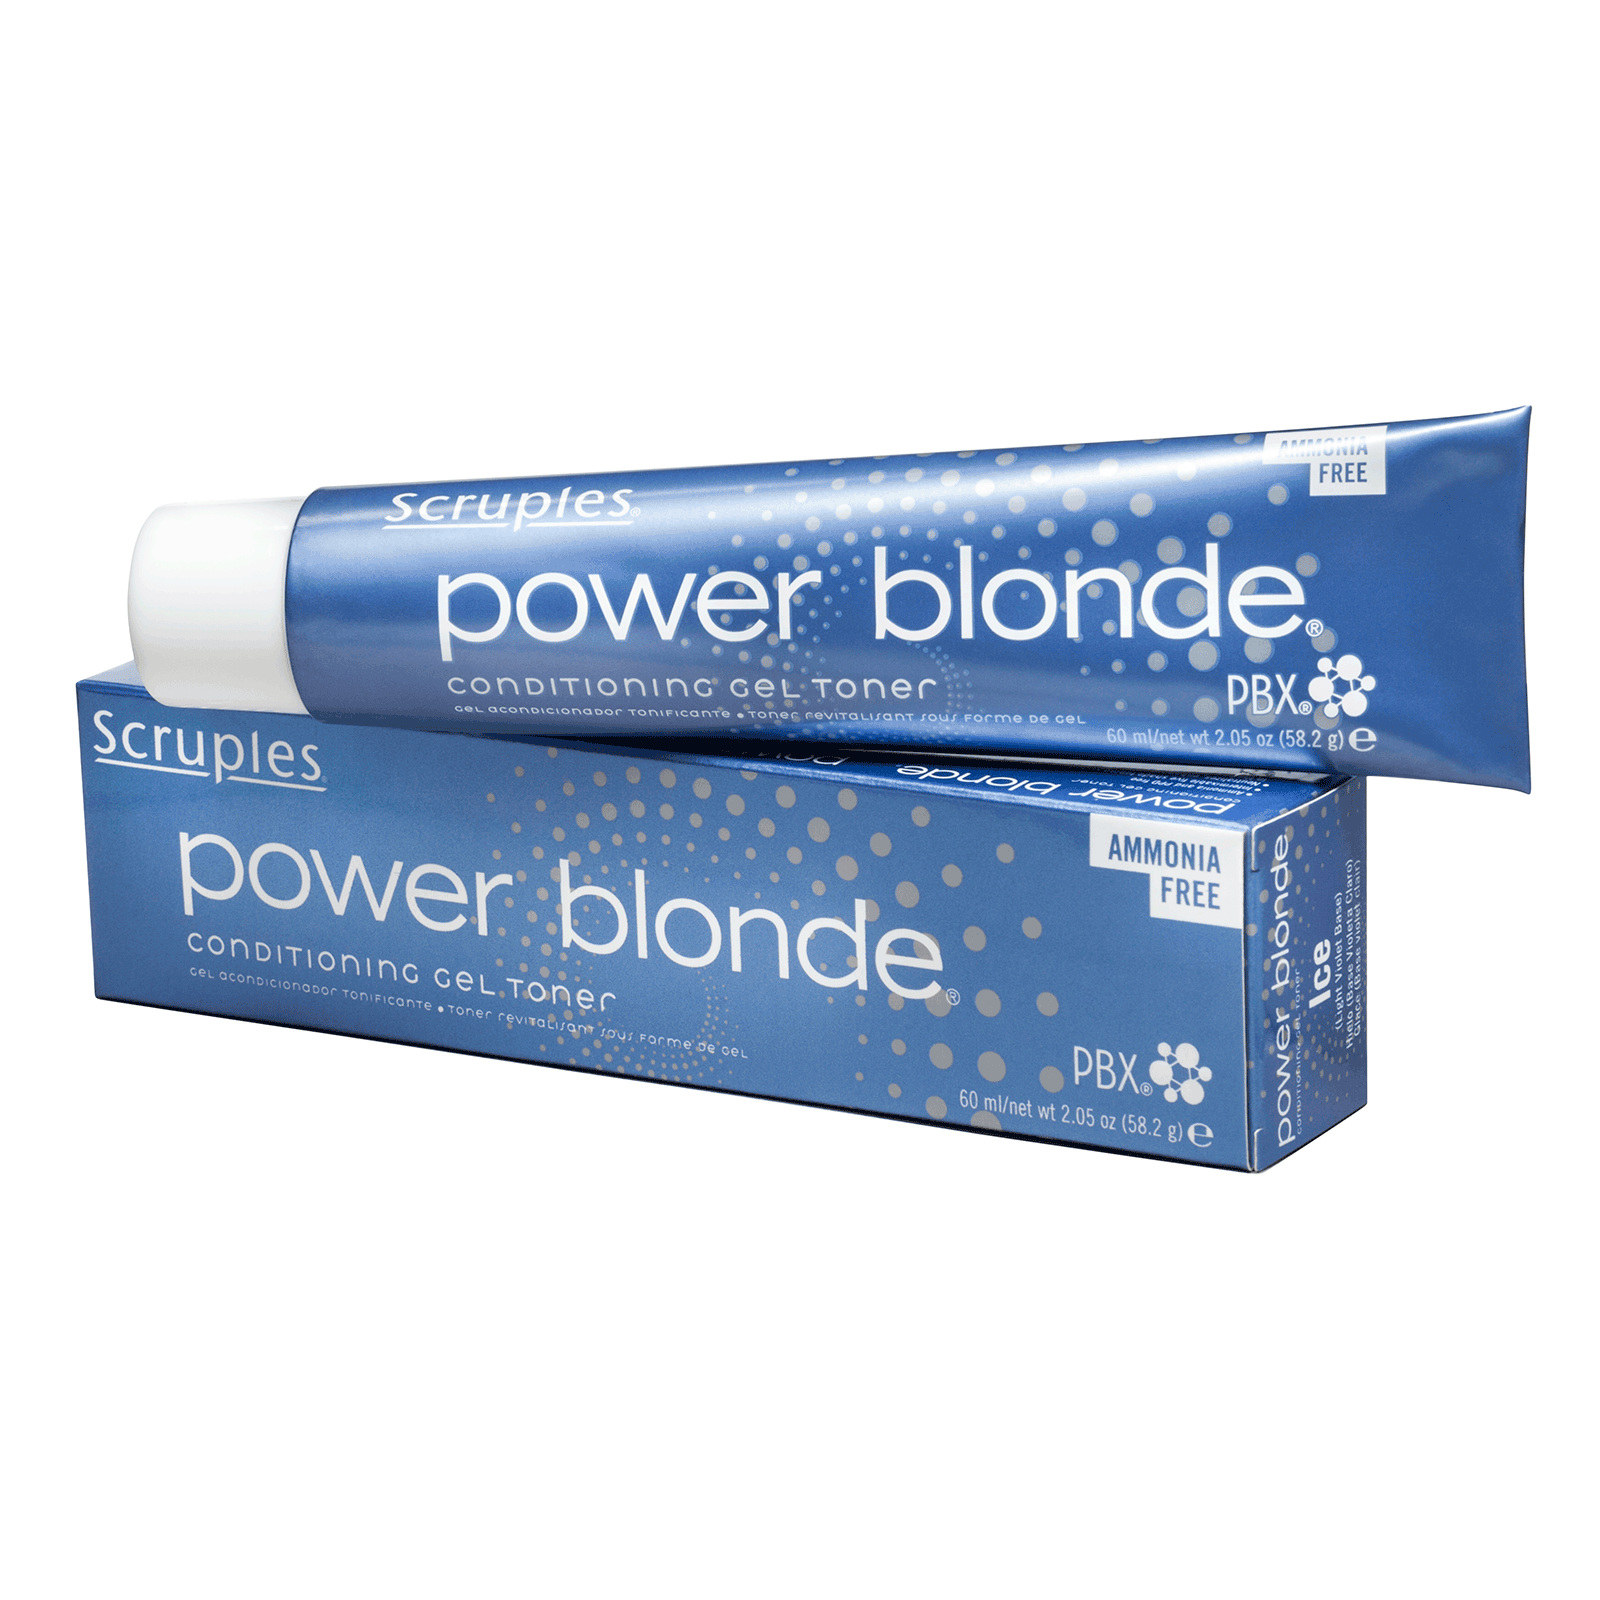 Power Blonde Conditioning Gel Toner - Iris